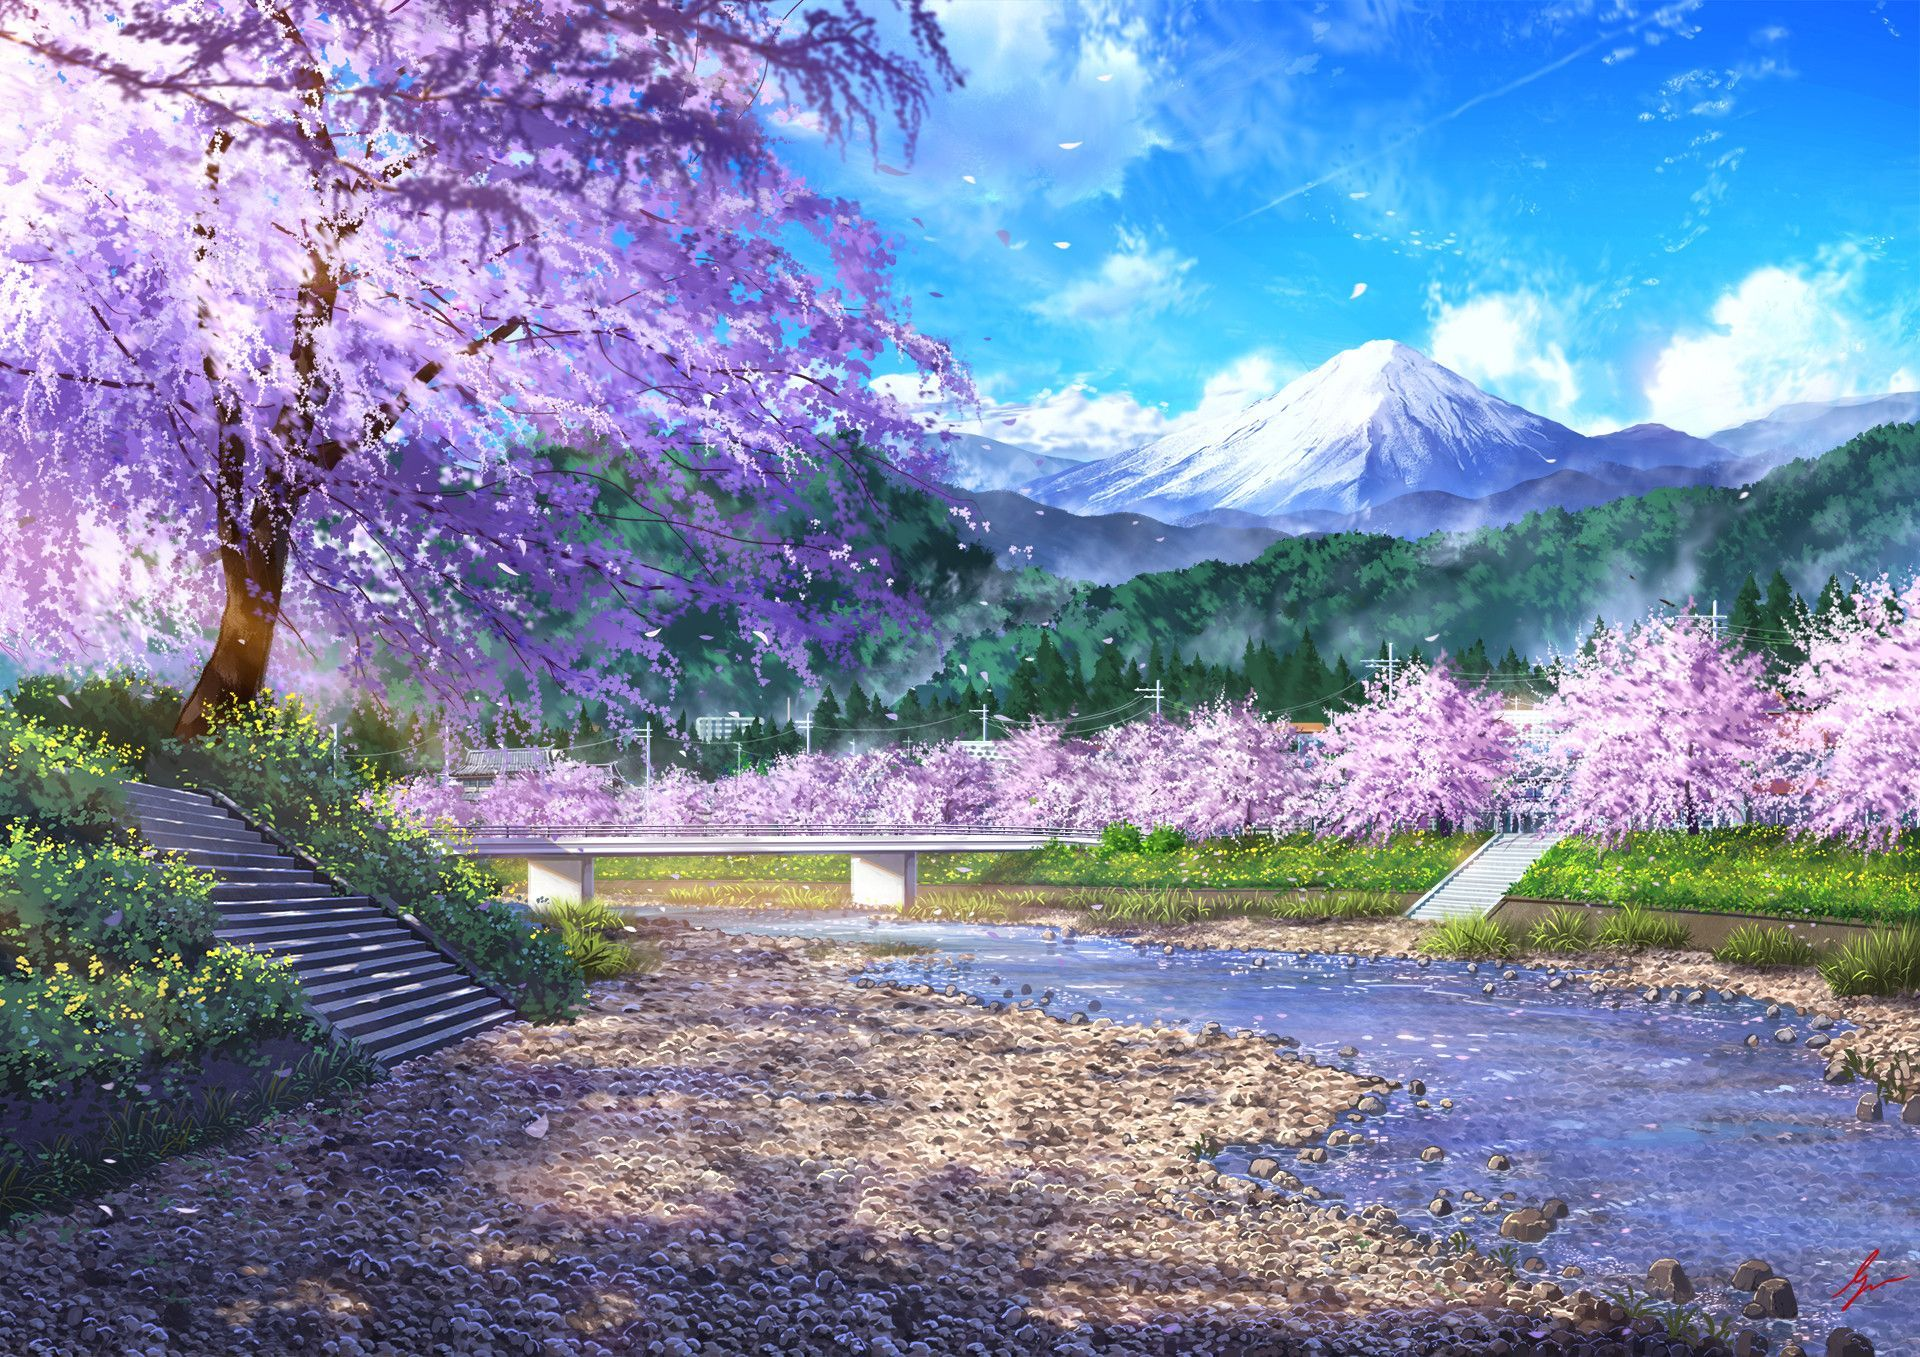 Spring Landscape Anime Wallpapers - Wallpaper Cave